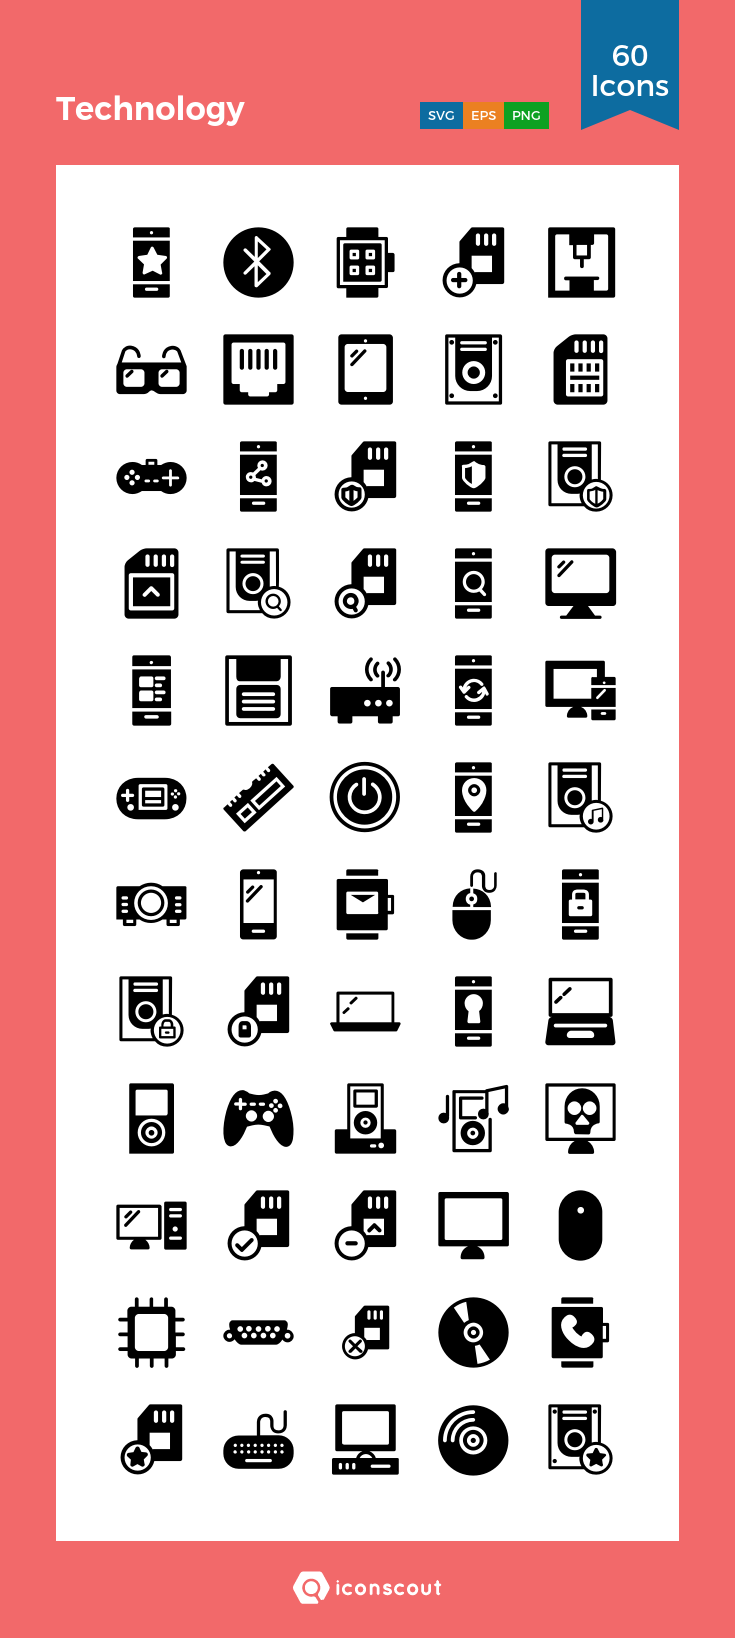 Download Technology Icon Pack Available In Svg Png Eps Ai Icon Fonts Icon Pack Technology Icon Icon